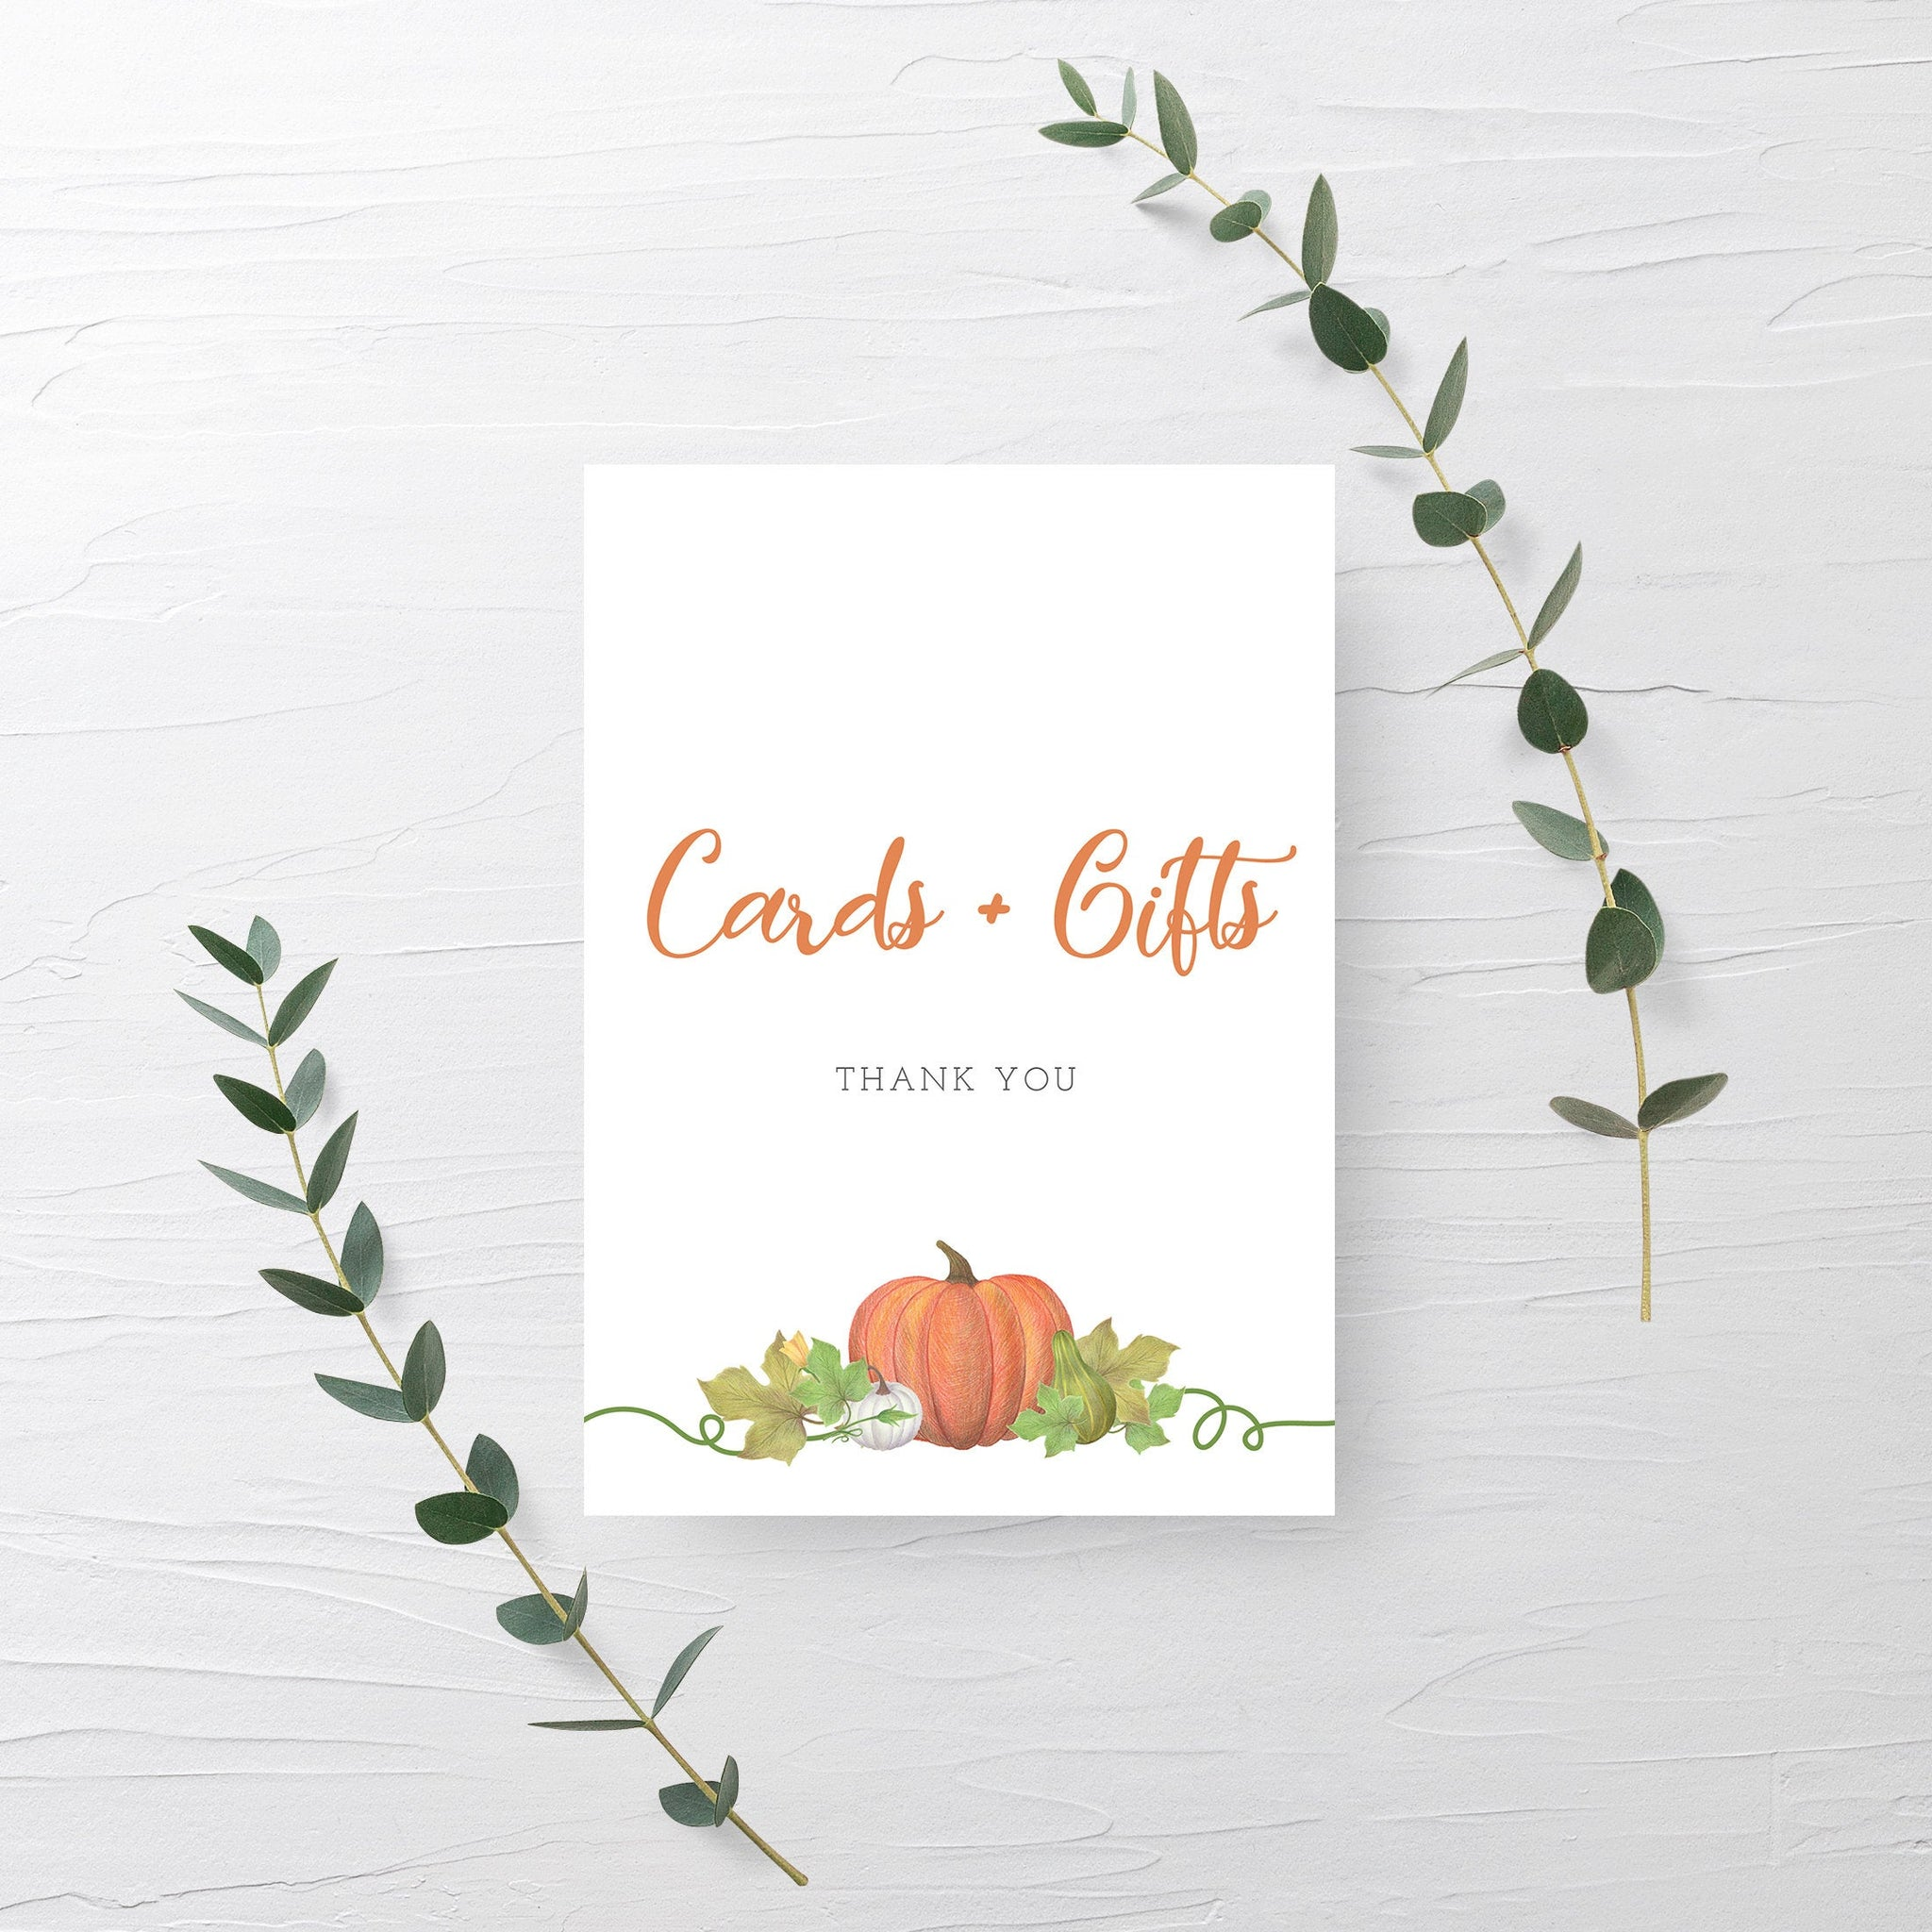 Little Pumpkin Baby Shower Decorations, Little Pumpkin Baby Shower Cards and Gifts Sign Printable, INSTANT DOWNLOAD - HP100 - @PlumPolkaDot